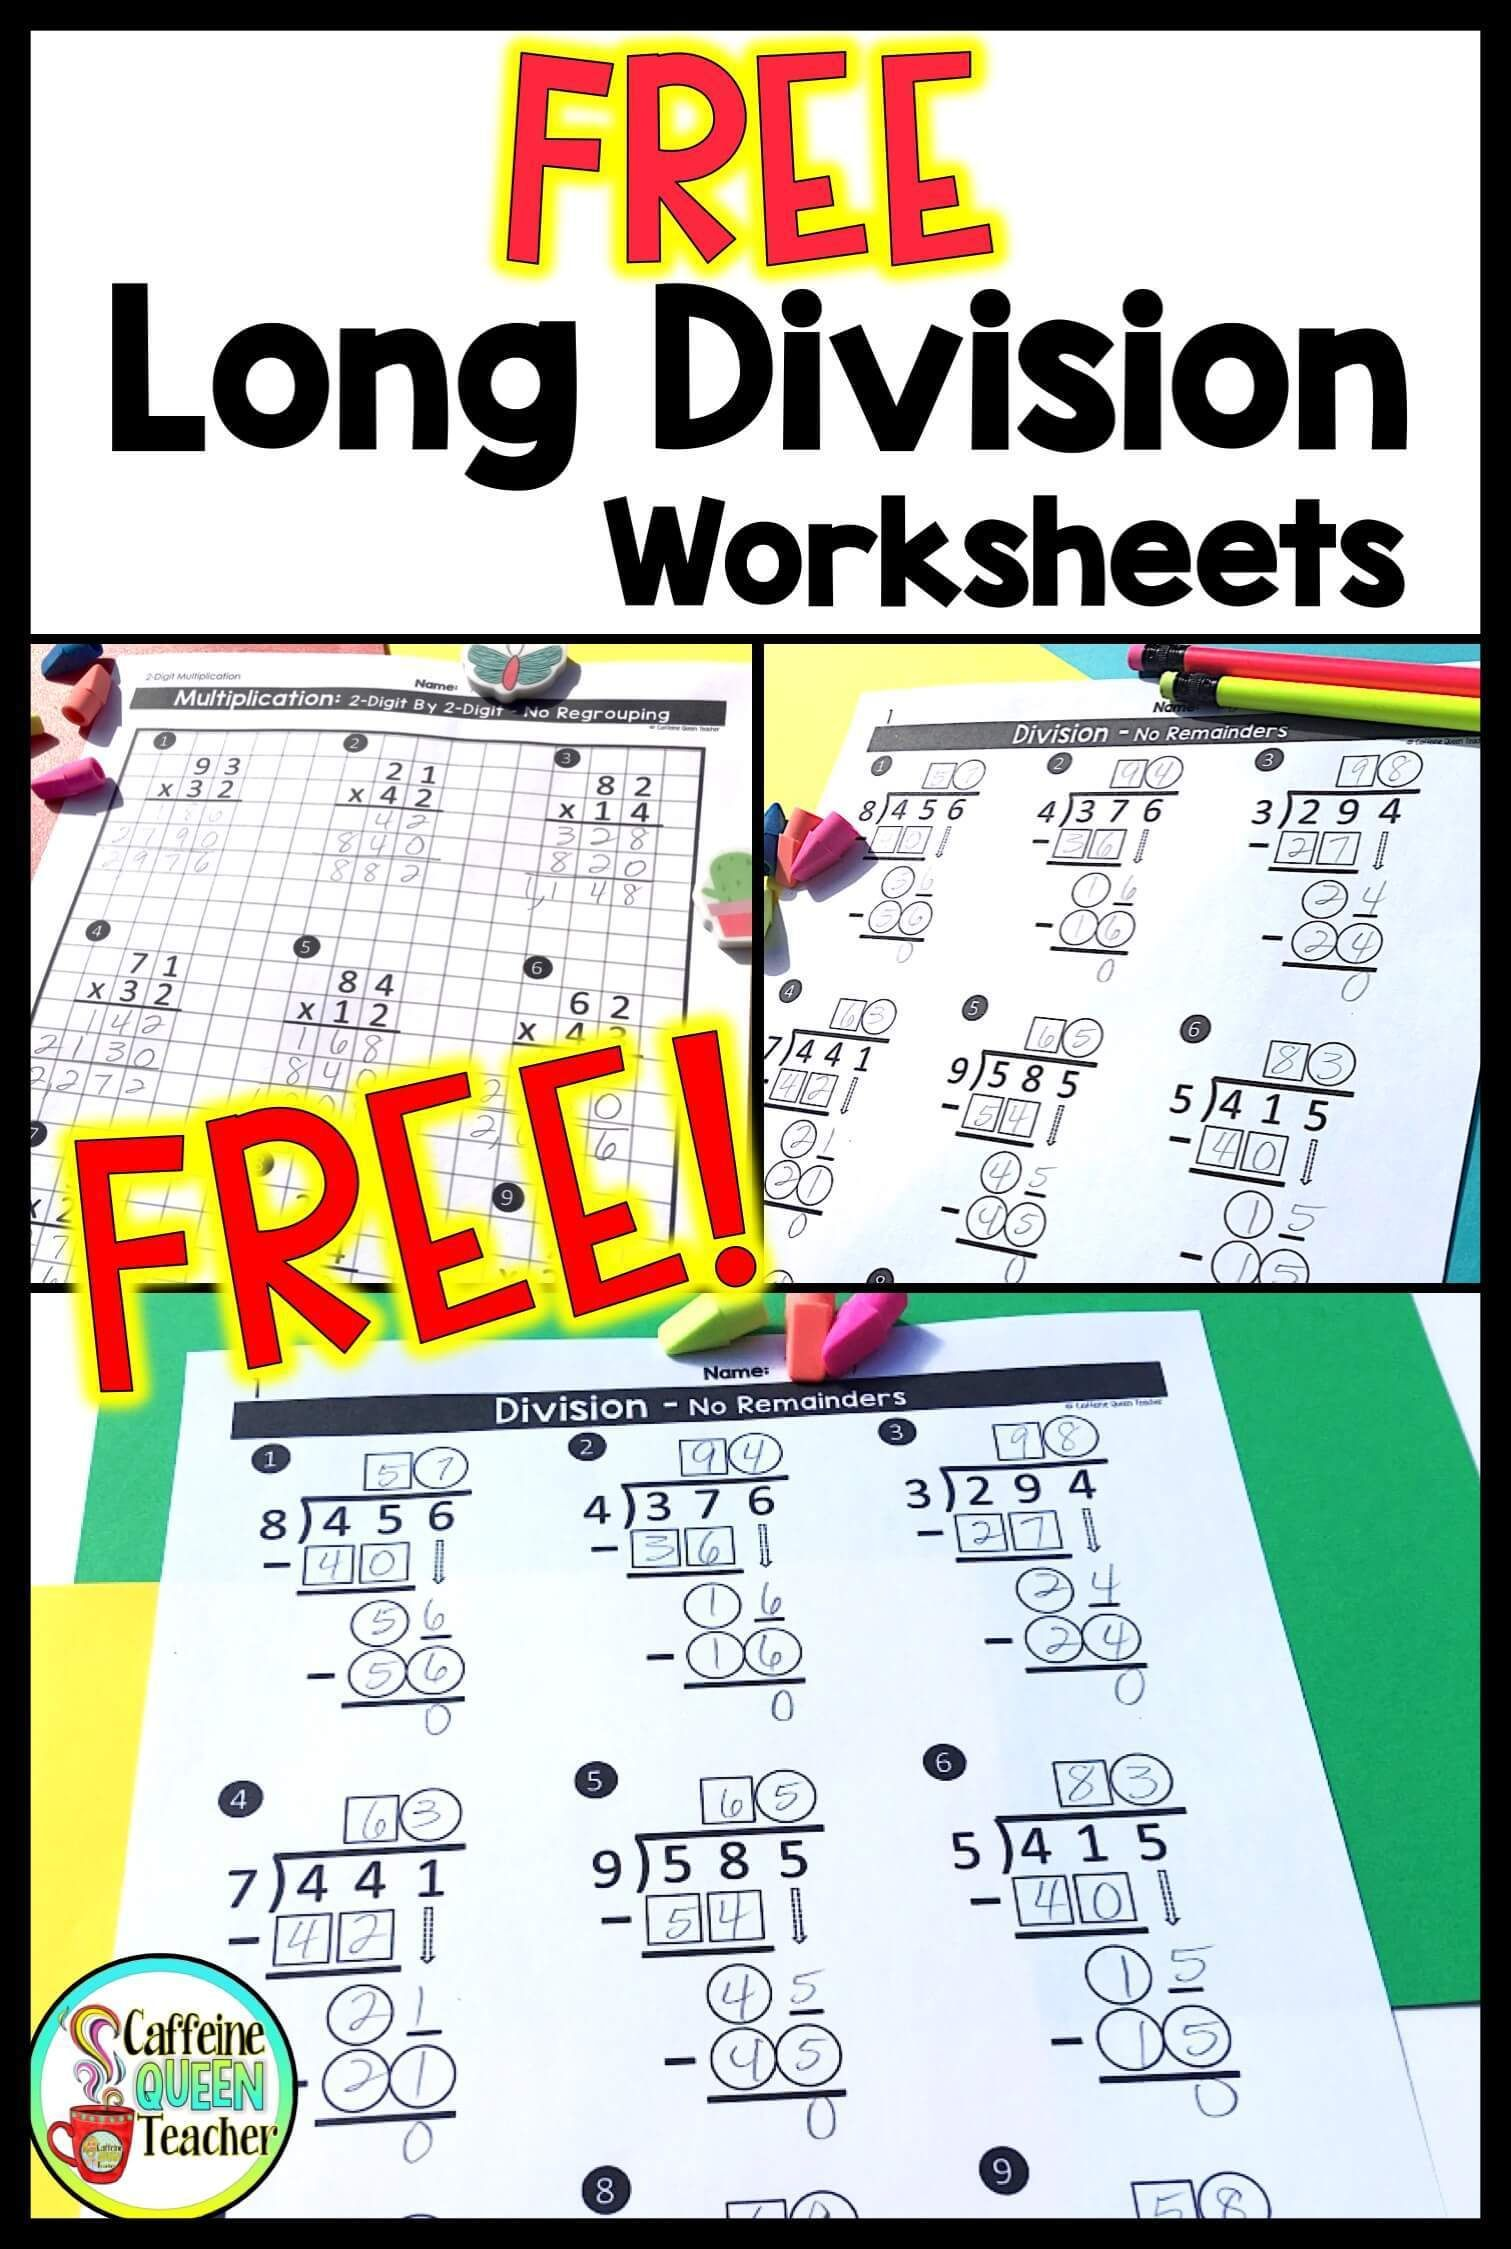 Differentiated Long Division Worksheets For Free Caffeine Queen Teacher Math Division Division Worksheets Long Division Worksheets Differentiated division worksheets year